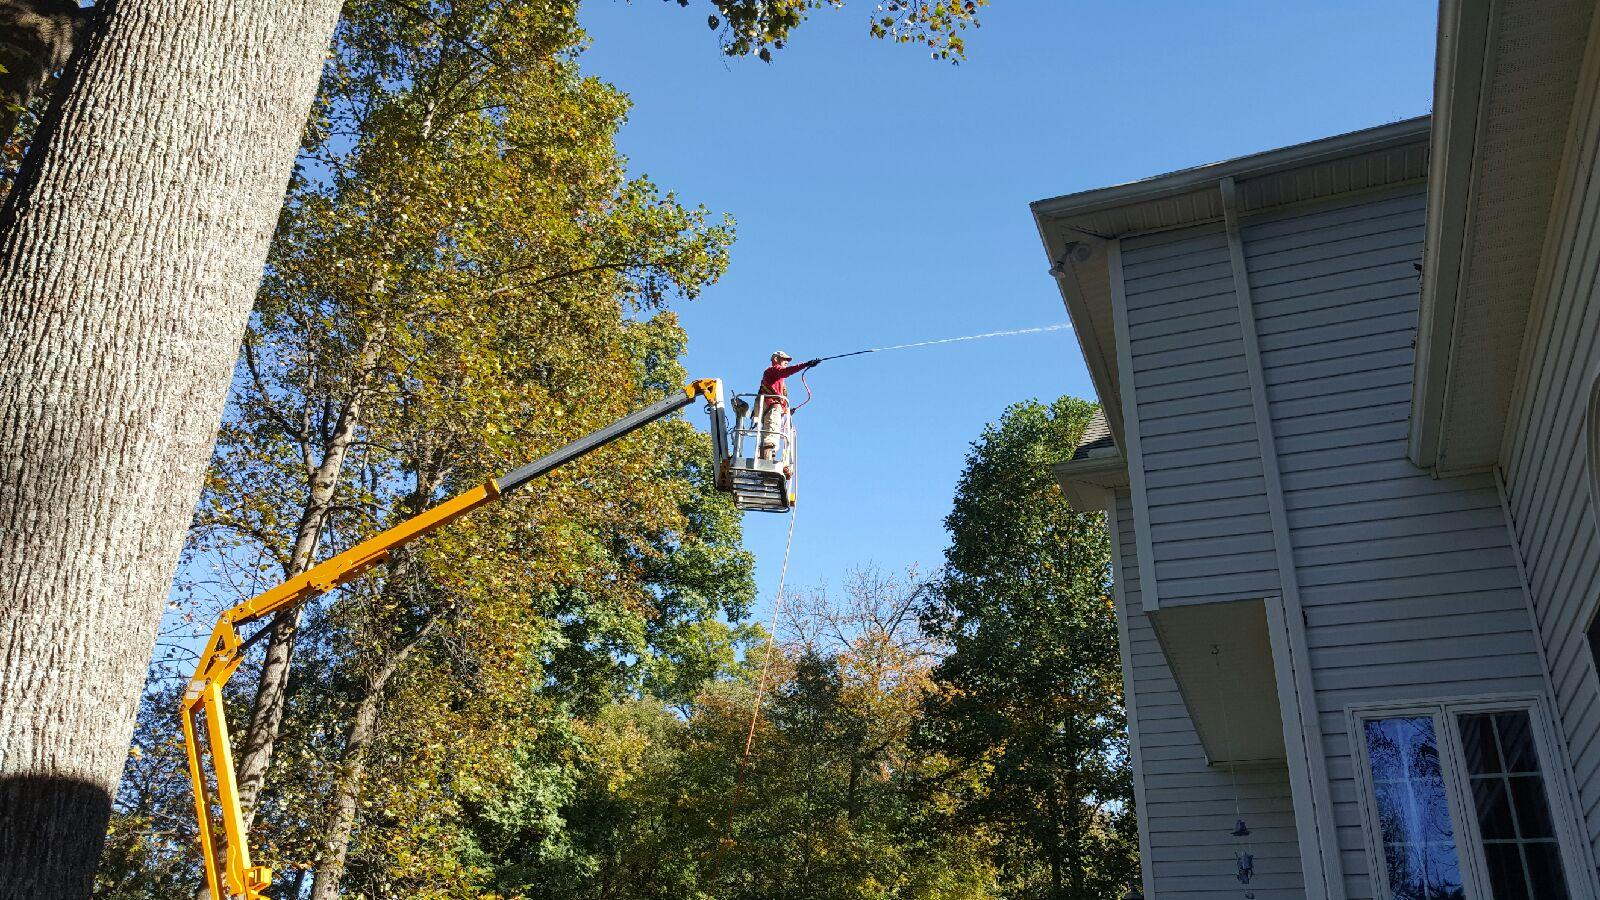 Boom Lift | Roof Cleaning Service in Fayetteville PA